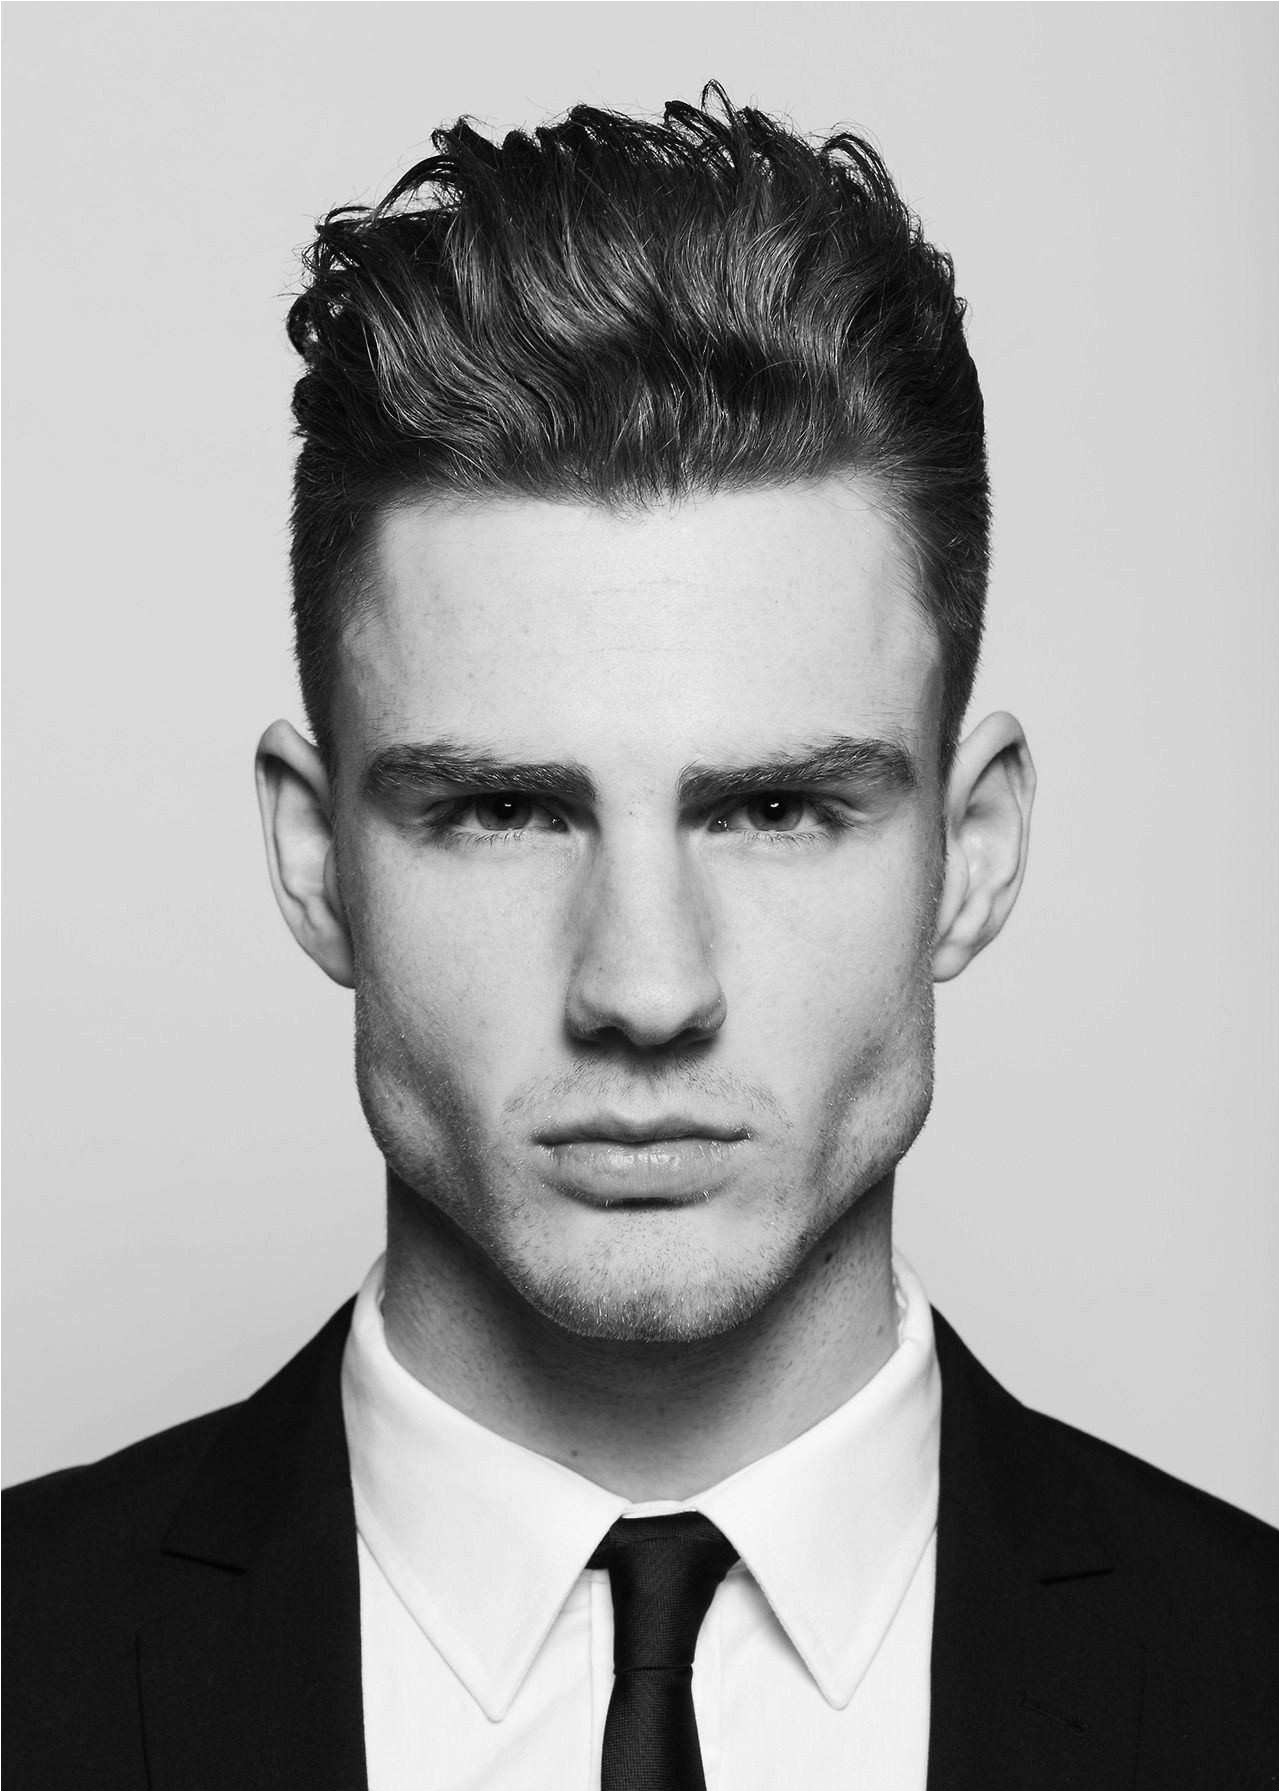 Hairstyles From 1920 1920 Girl Hairstyles New 1920s Hairstyles Luxury Male Hair Styles